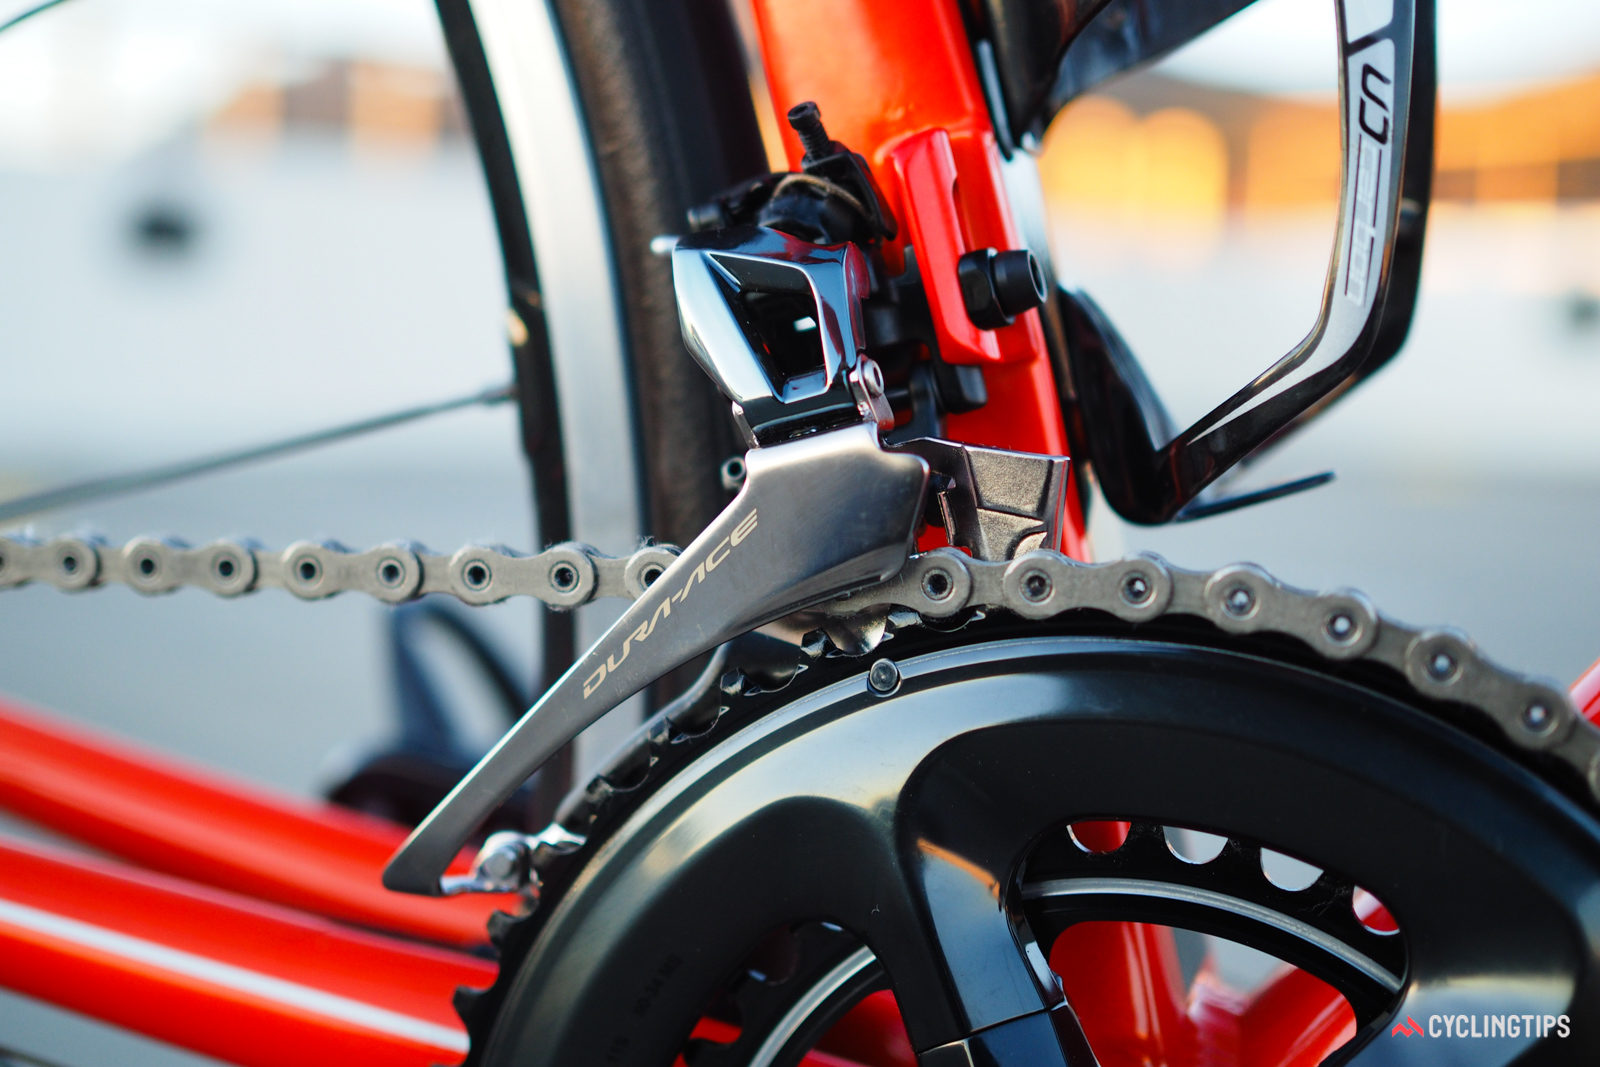 Shimano's previous-generation Dura-Ace front derailleur design worked extremely well, but could sometimes be very finicky to set up. The new one takes more time to install and adjust, but is far more tolerant of different cable entry angles.